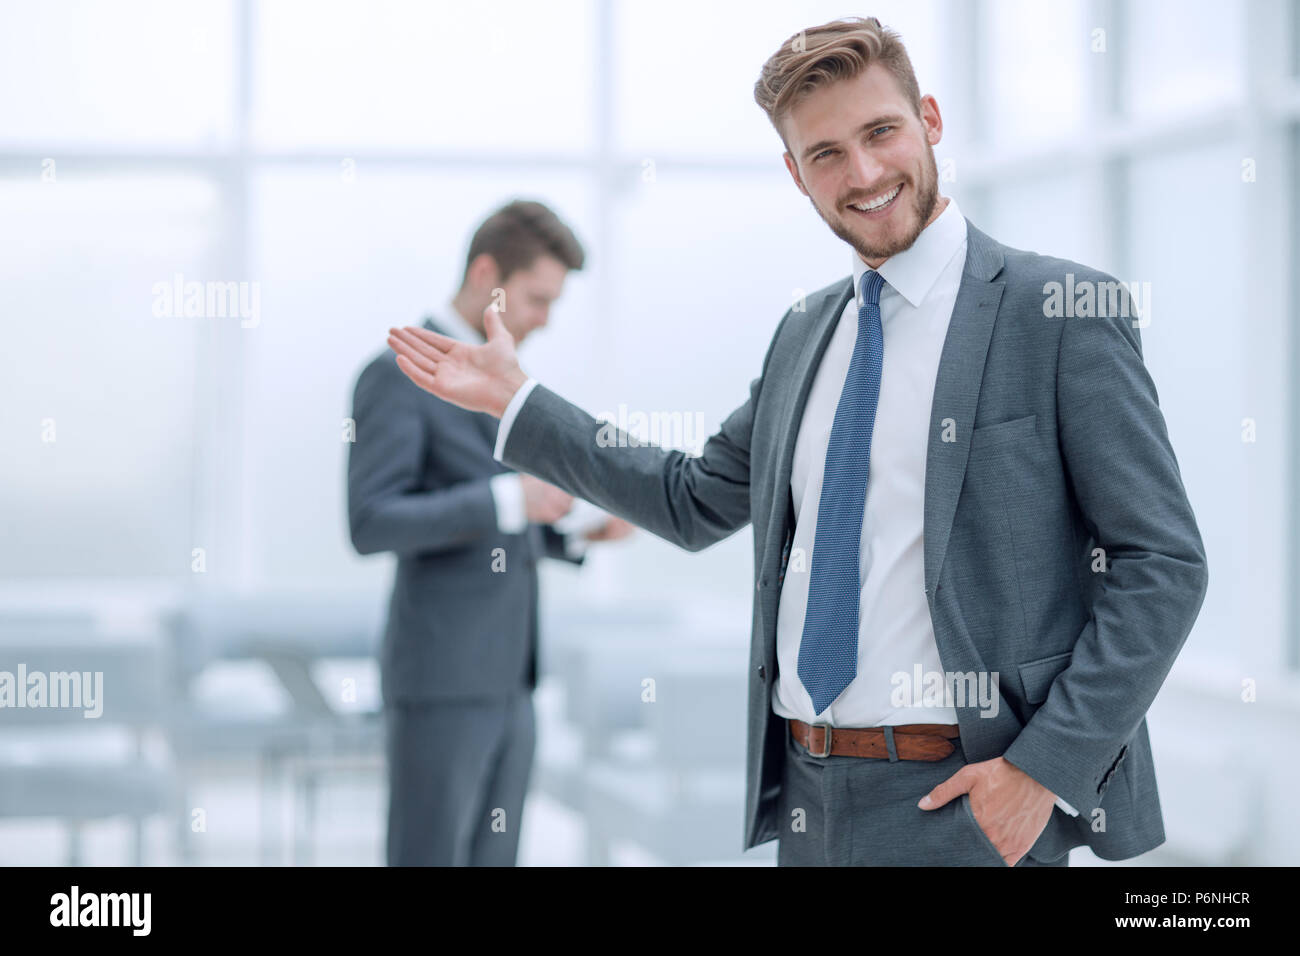 Successful Businessman Invites You To The Office Stock Photo Alamy